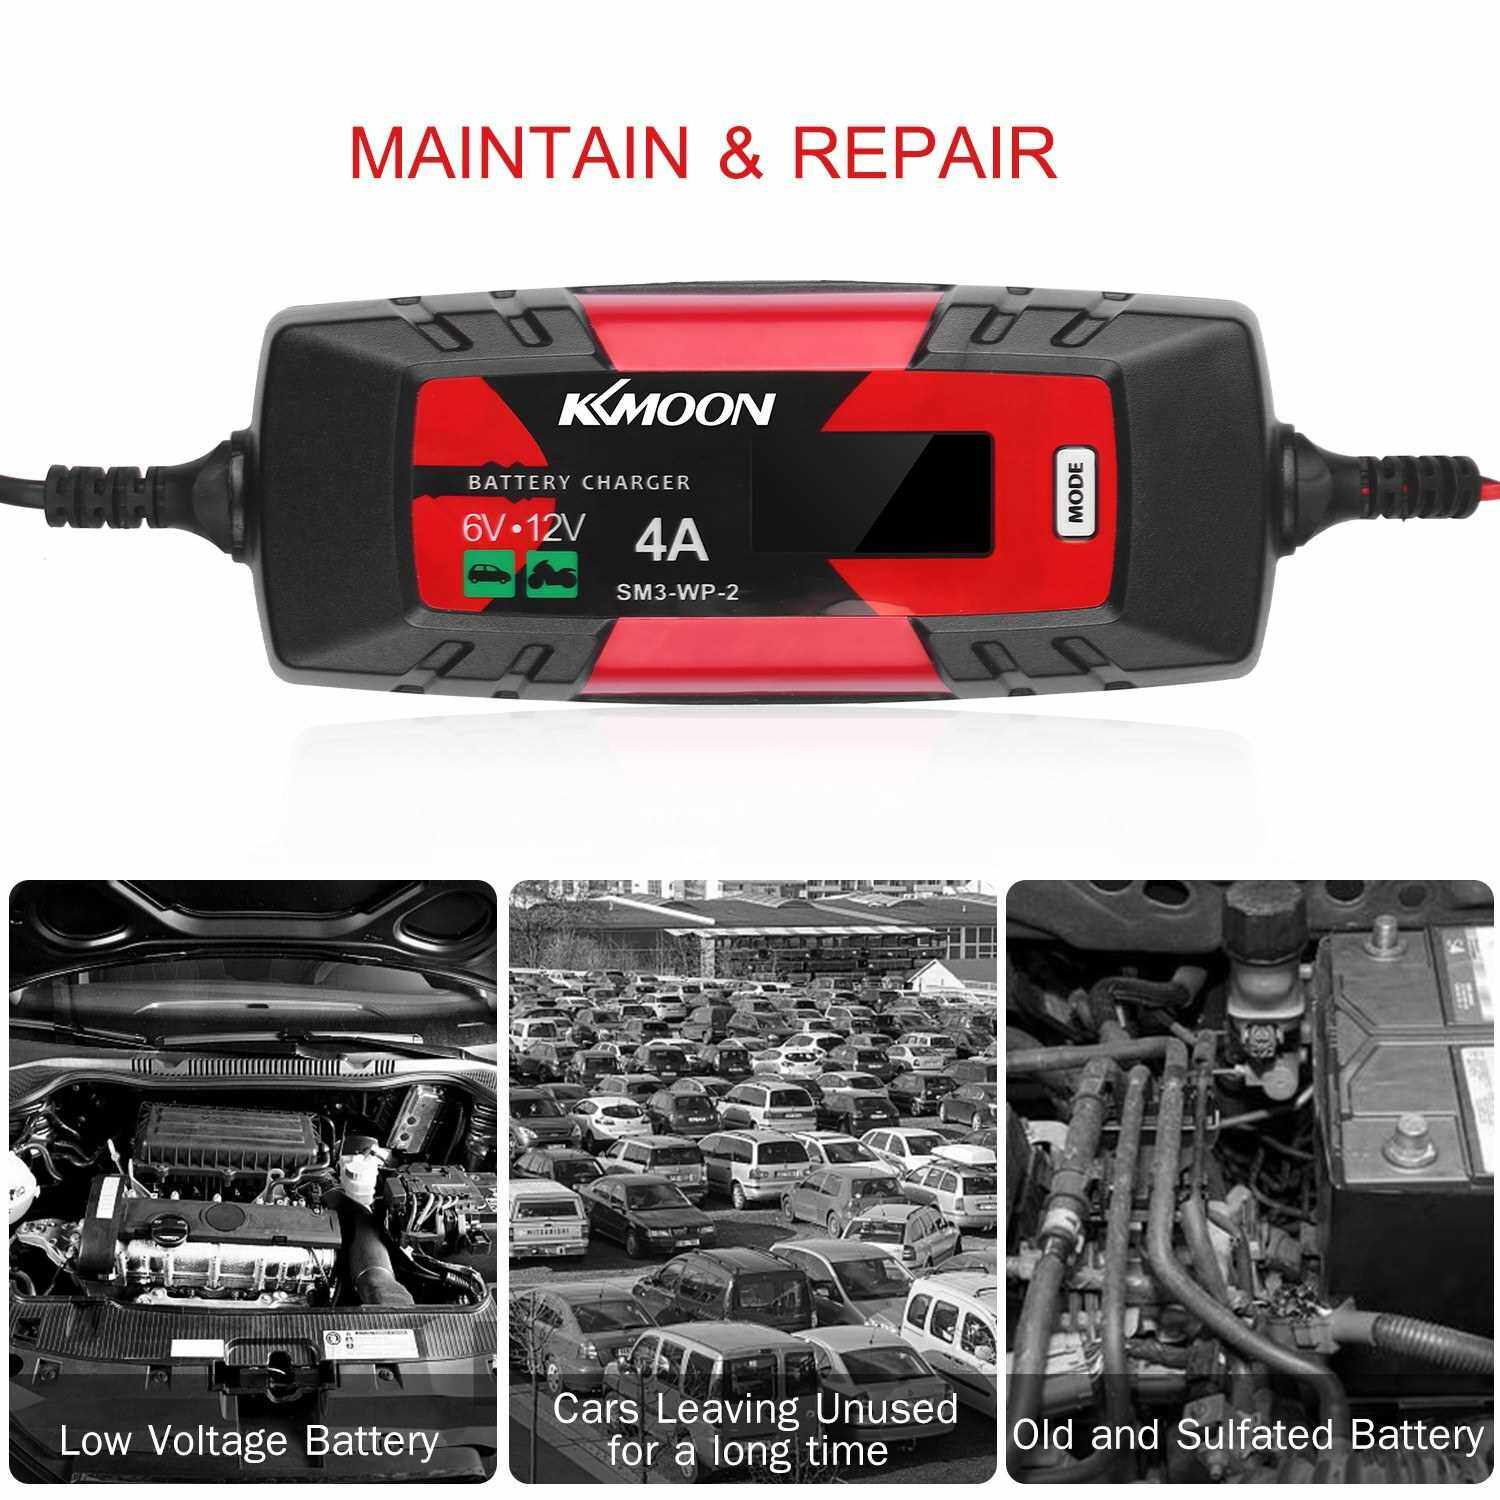 Best Selling KKmoonCar Battery Charger Battery Charger & Maintainer 6V/12V 4Amp Intelligent Automatic Battery Charger with LCD Screen Pulse Repair Charger for Cars Motorcycles Boat and More EU Plug (Eu)